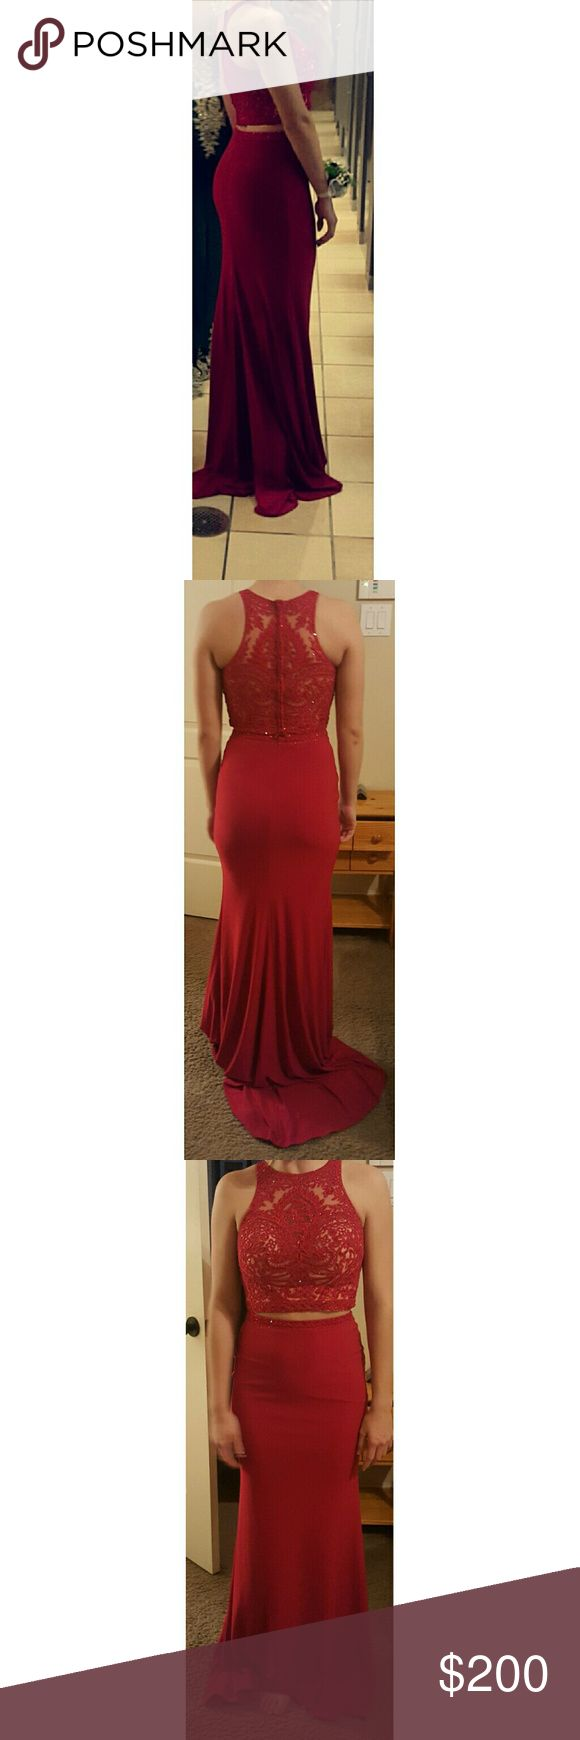 Prom dress for sale, size 4!! The dress is a two piece red dress. It has jewls on the top and soft material from the waist down. N/A Dresses Prom